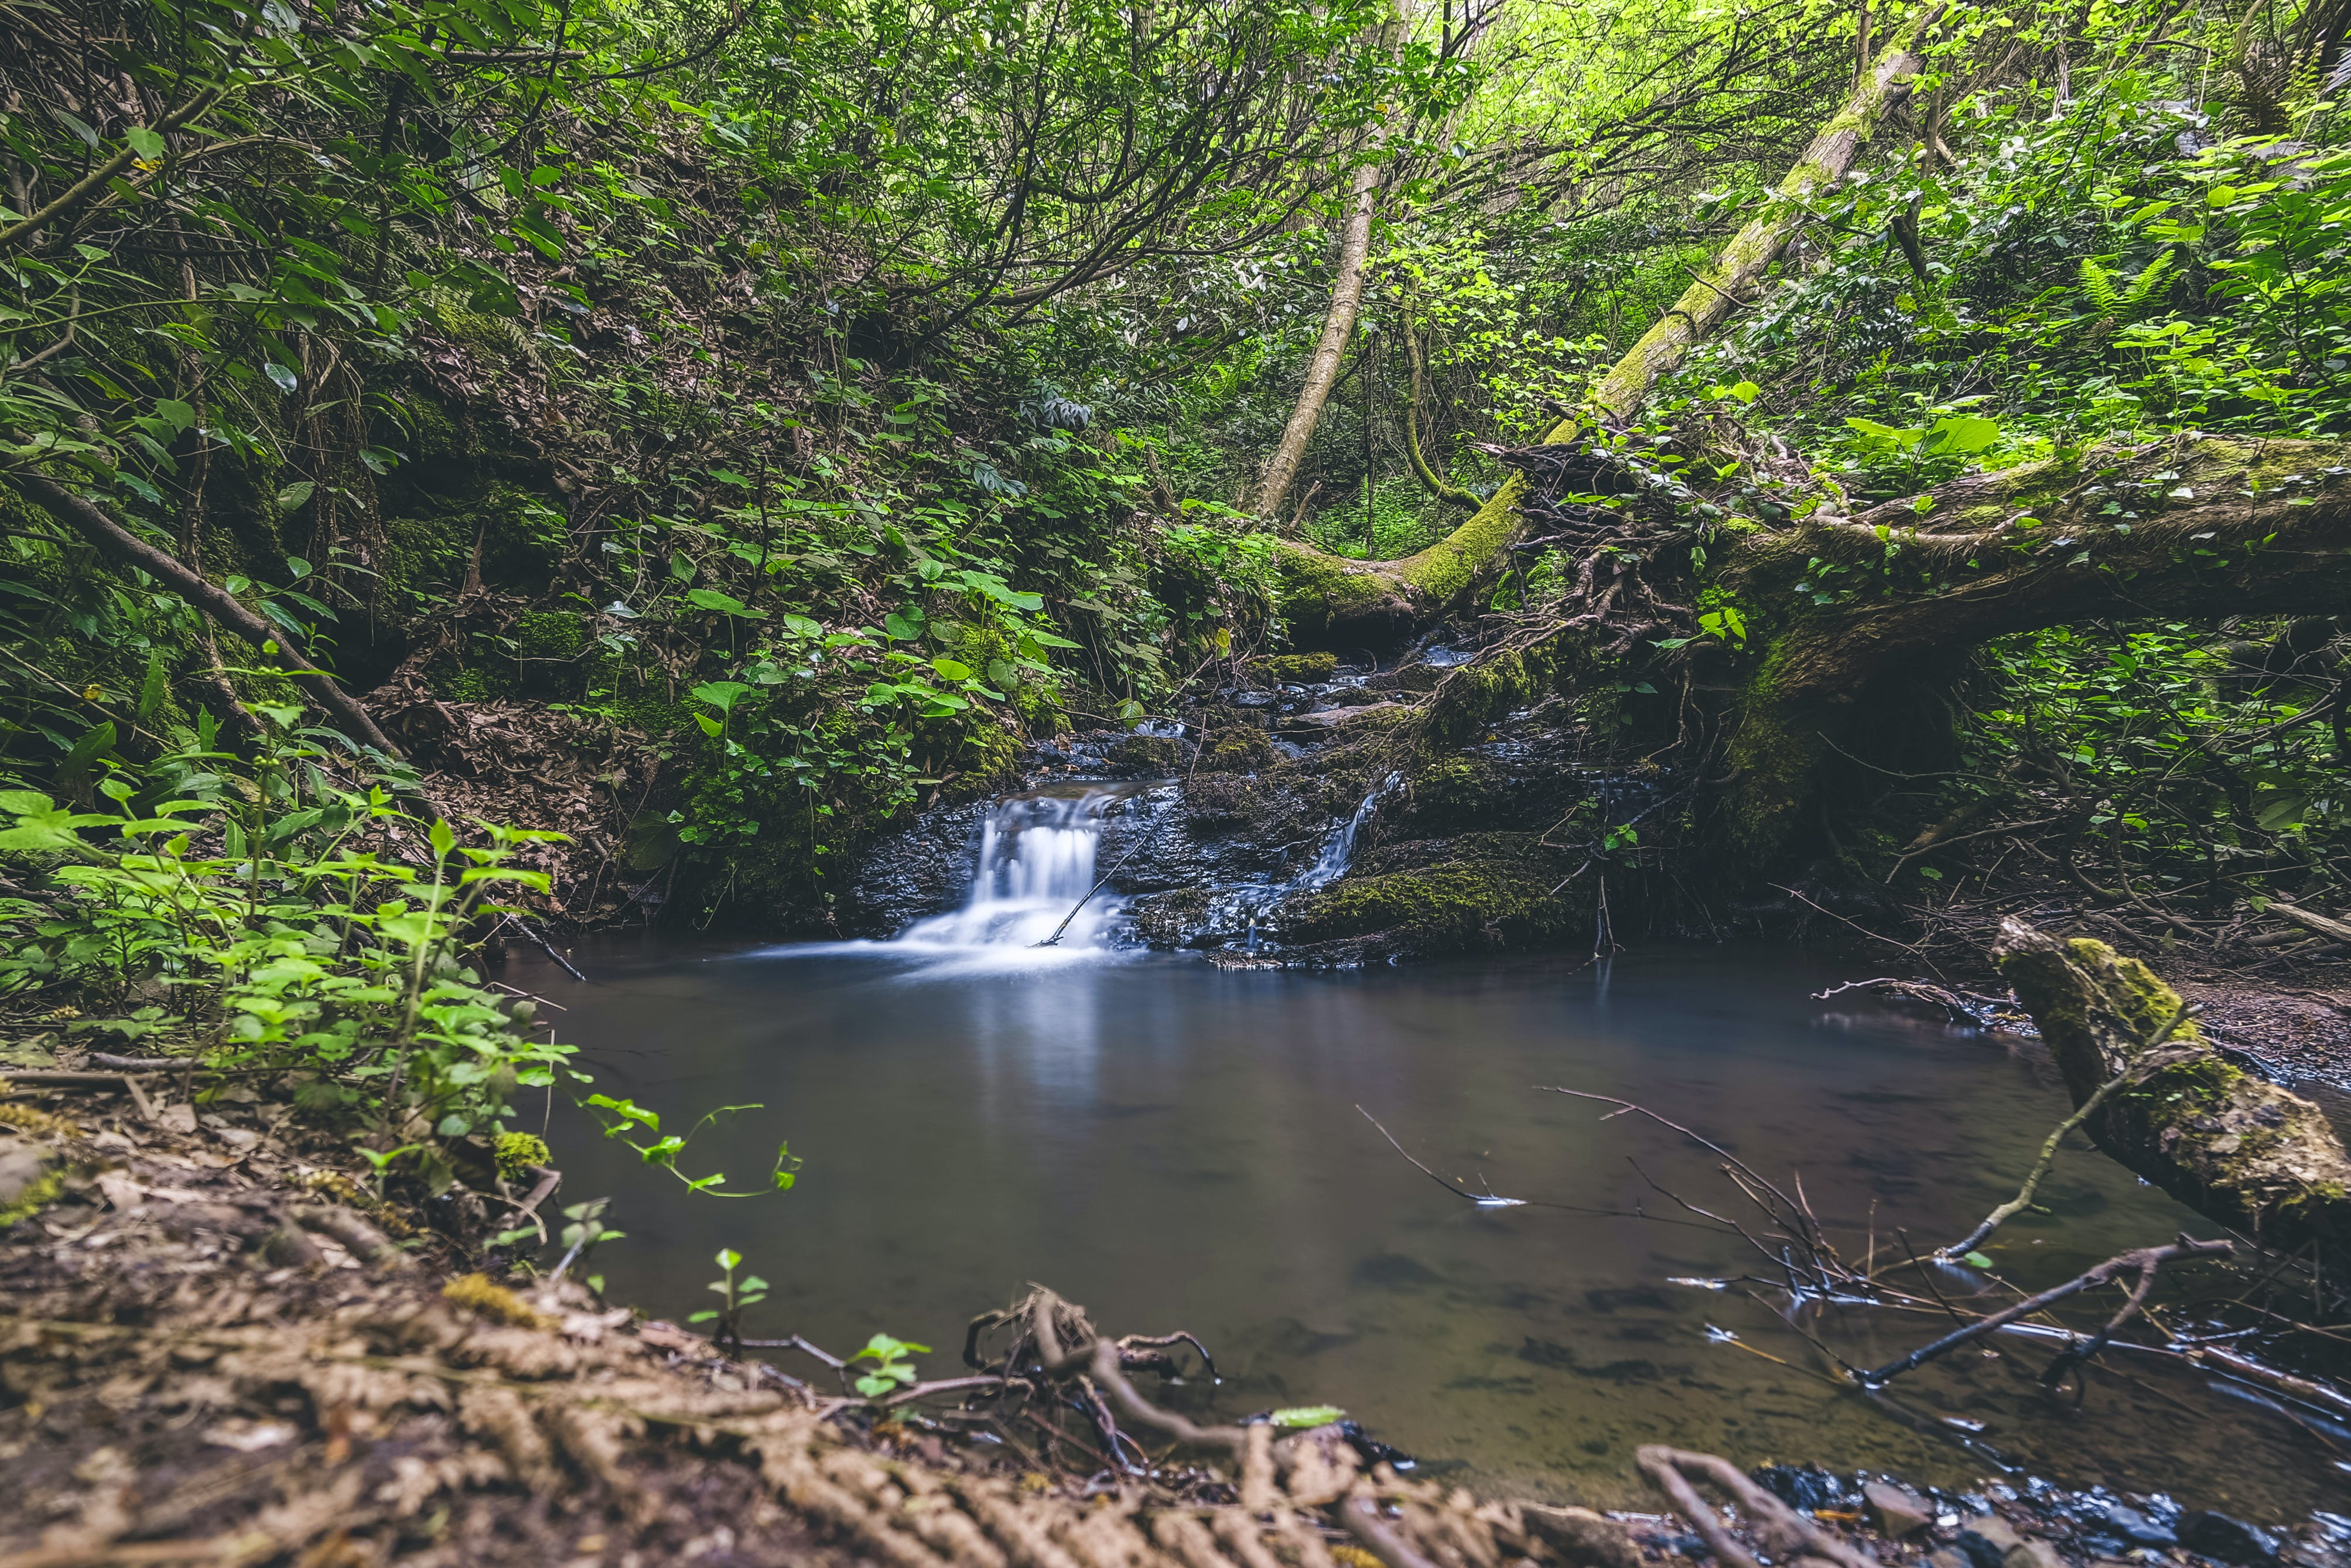 Waterfalls Surrounded With Green Leafed Trees